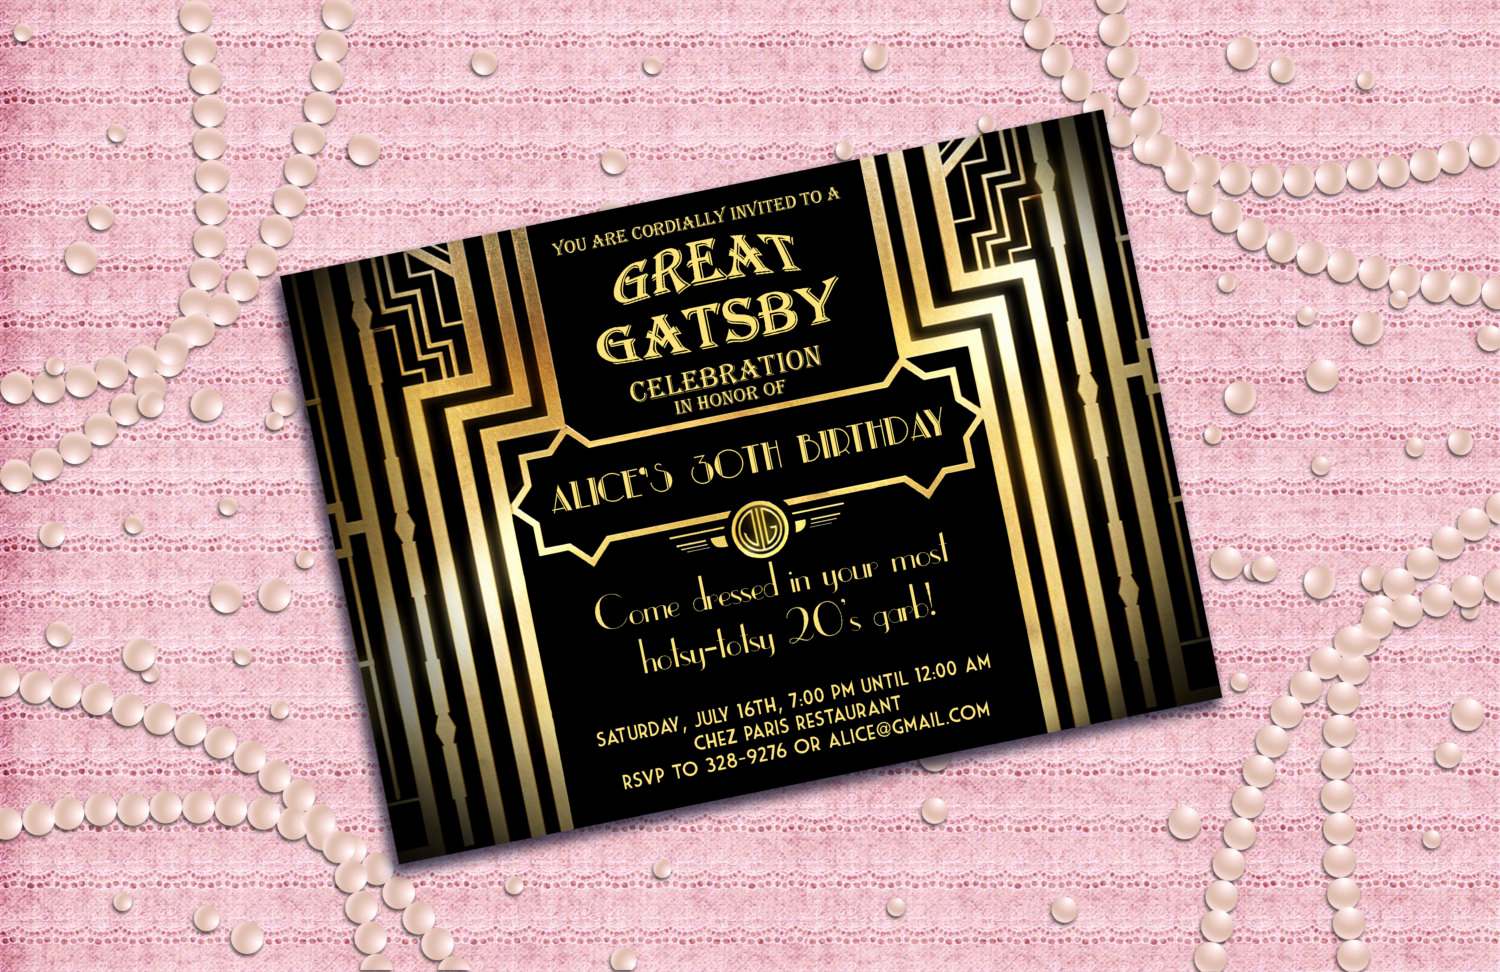 1920s Party Invitation Template Free Beautiful 1920s Party Invites